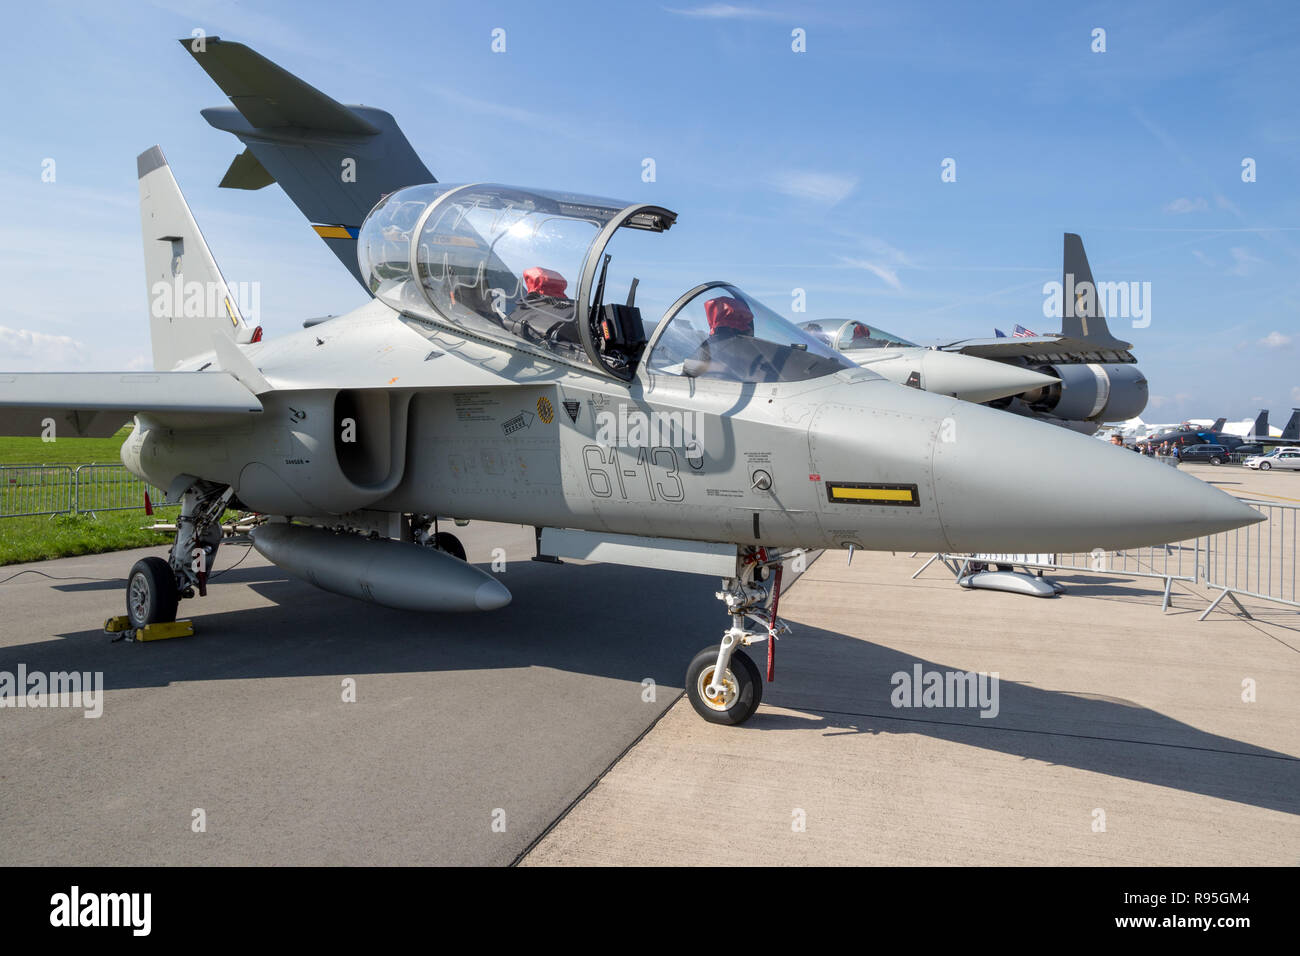 BERLIN, GERMANY - APR 27, 2018: Alenia Aermacchi M-346 Master military trainer aircraft on display at the Berlin ILA Air Show. - Stock Image